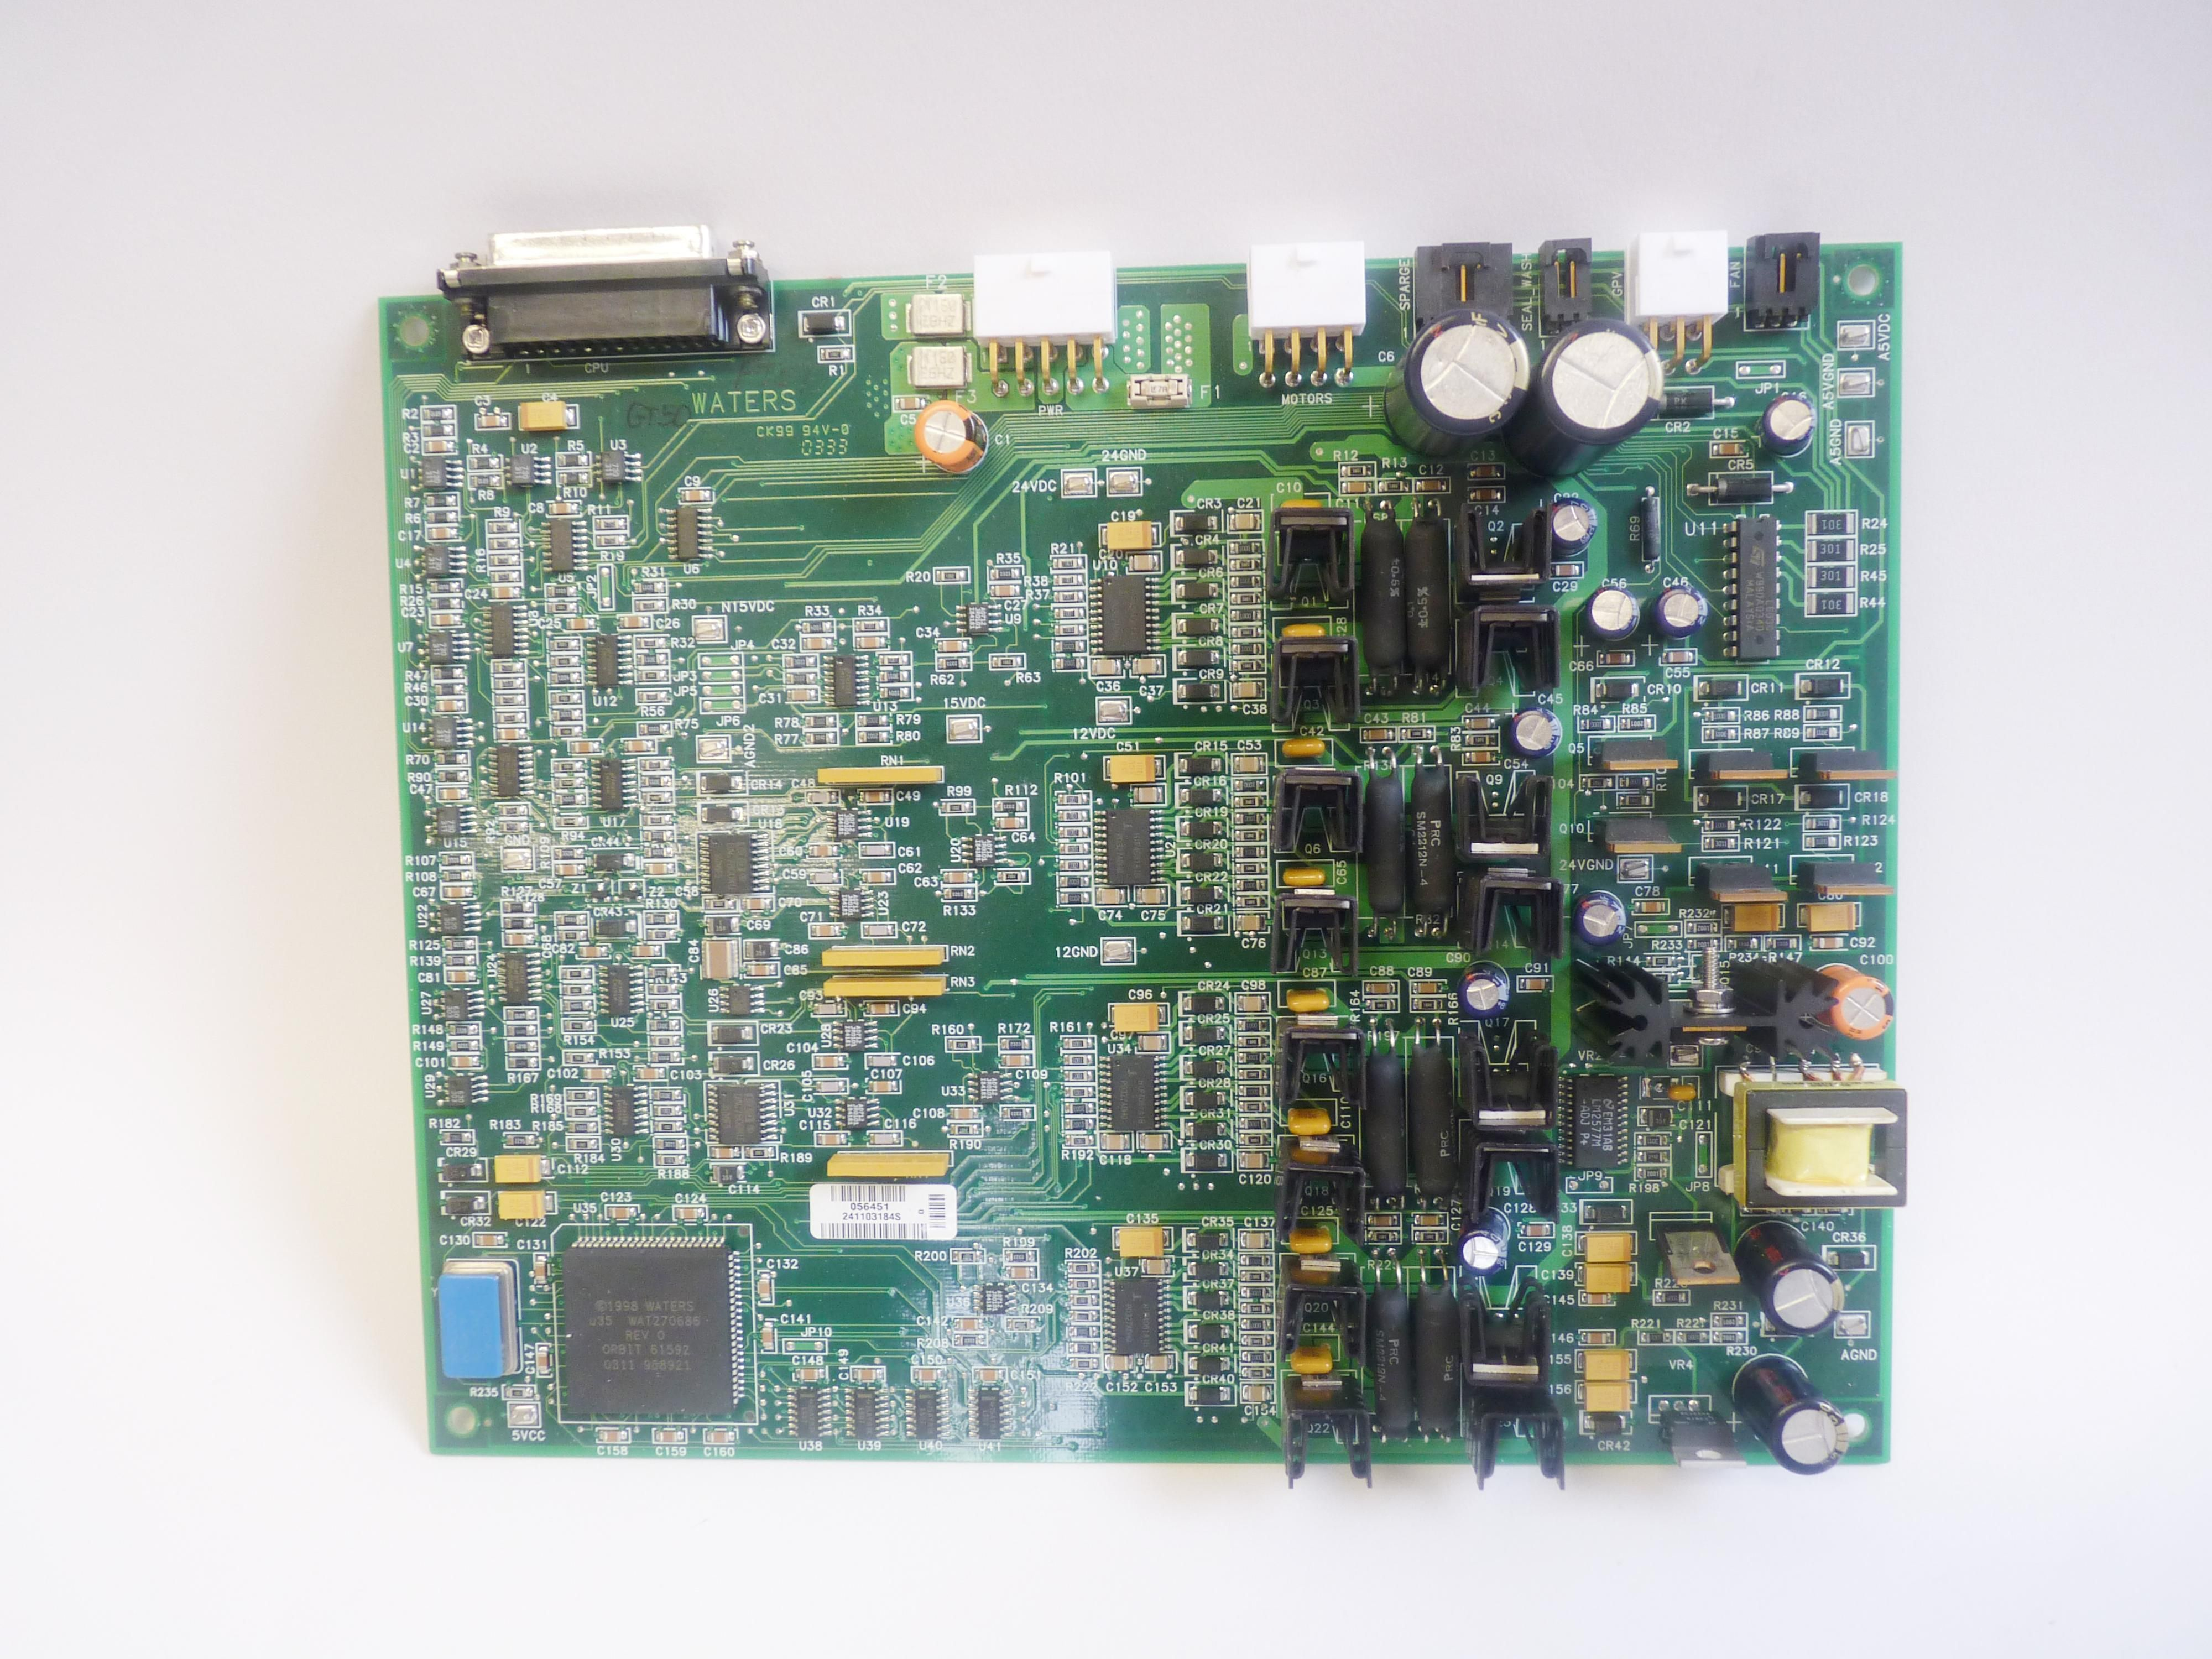 Waters 2695 PCB plunger driver board